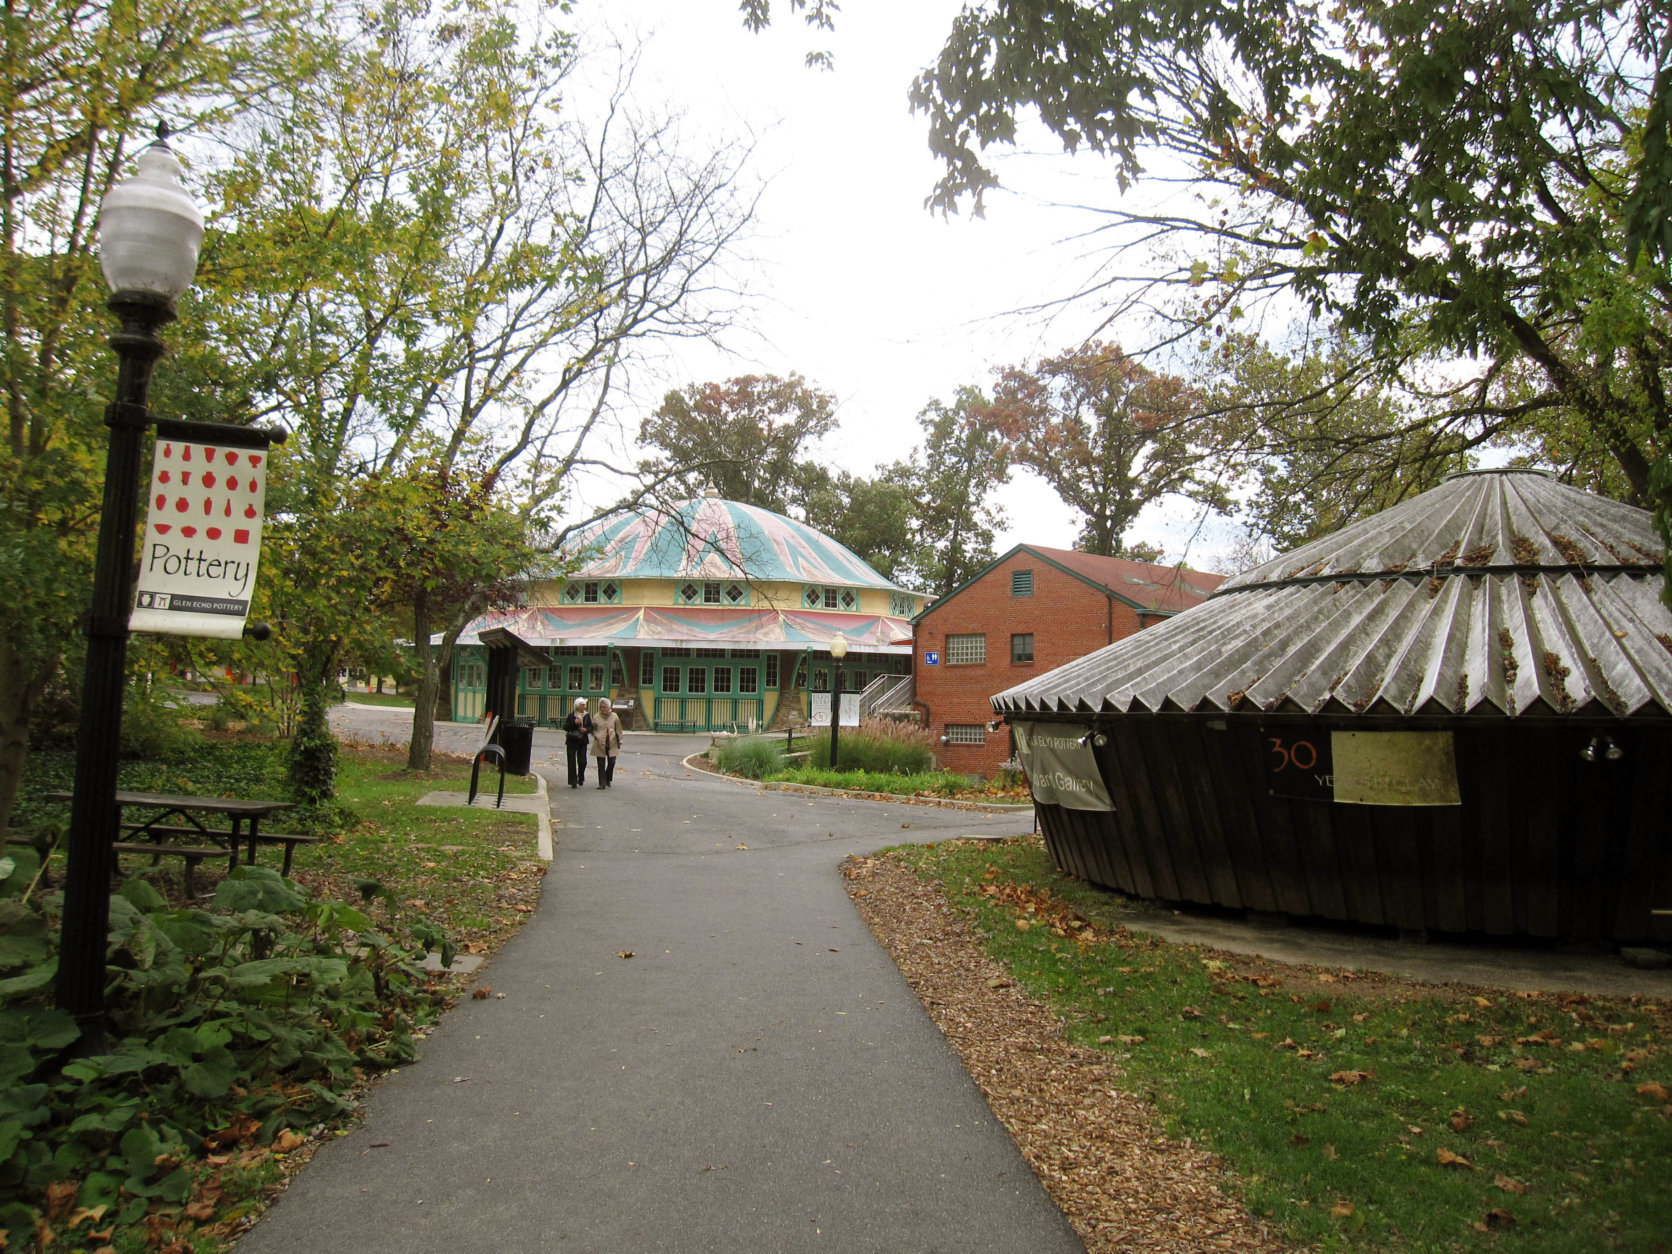 This Oct. 23, 2014 photo shows Glen Echo Park in Glen Echo, Md., a historic site that started in the late 19th century as a Chautauqua community, part of a movement to create planned towns with a focus on culture and education. The community failed and the land was turned into an amusement park. The park closed in 1968 but the amusement pavilions have been preserved, operated by the National Park service with the Glen Echo Park Partnership for the Arts and Culture/Montgomery County. Buildings today house everything from a carousel to art classes. (AP Photo/Beth J. Harpaz)